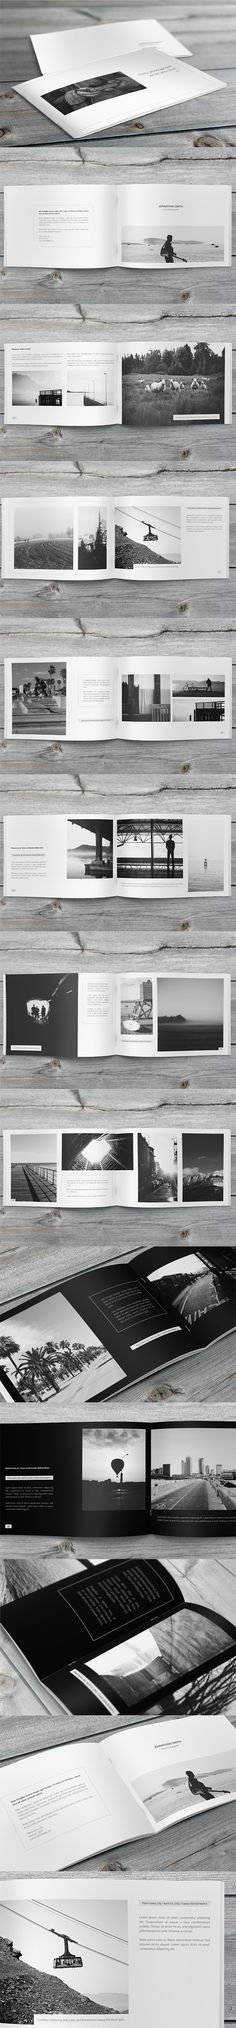 Minimalfolio Photography Portfolio A4 Brochure #4 on Behance                                                                                                                                                                                 More